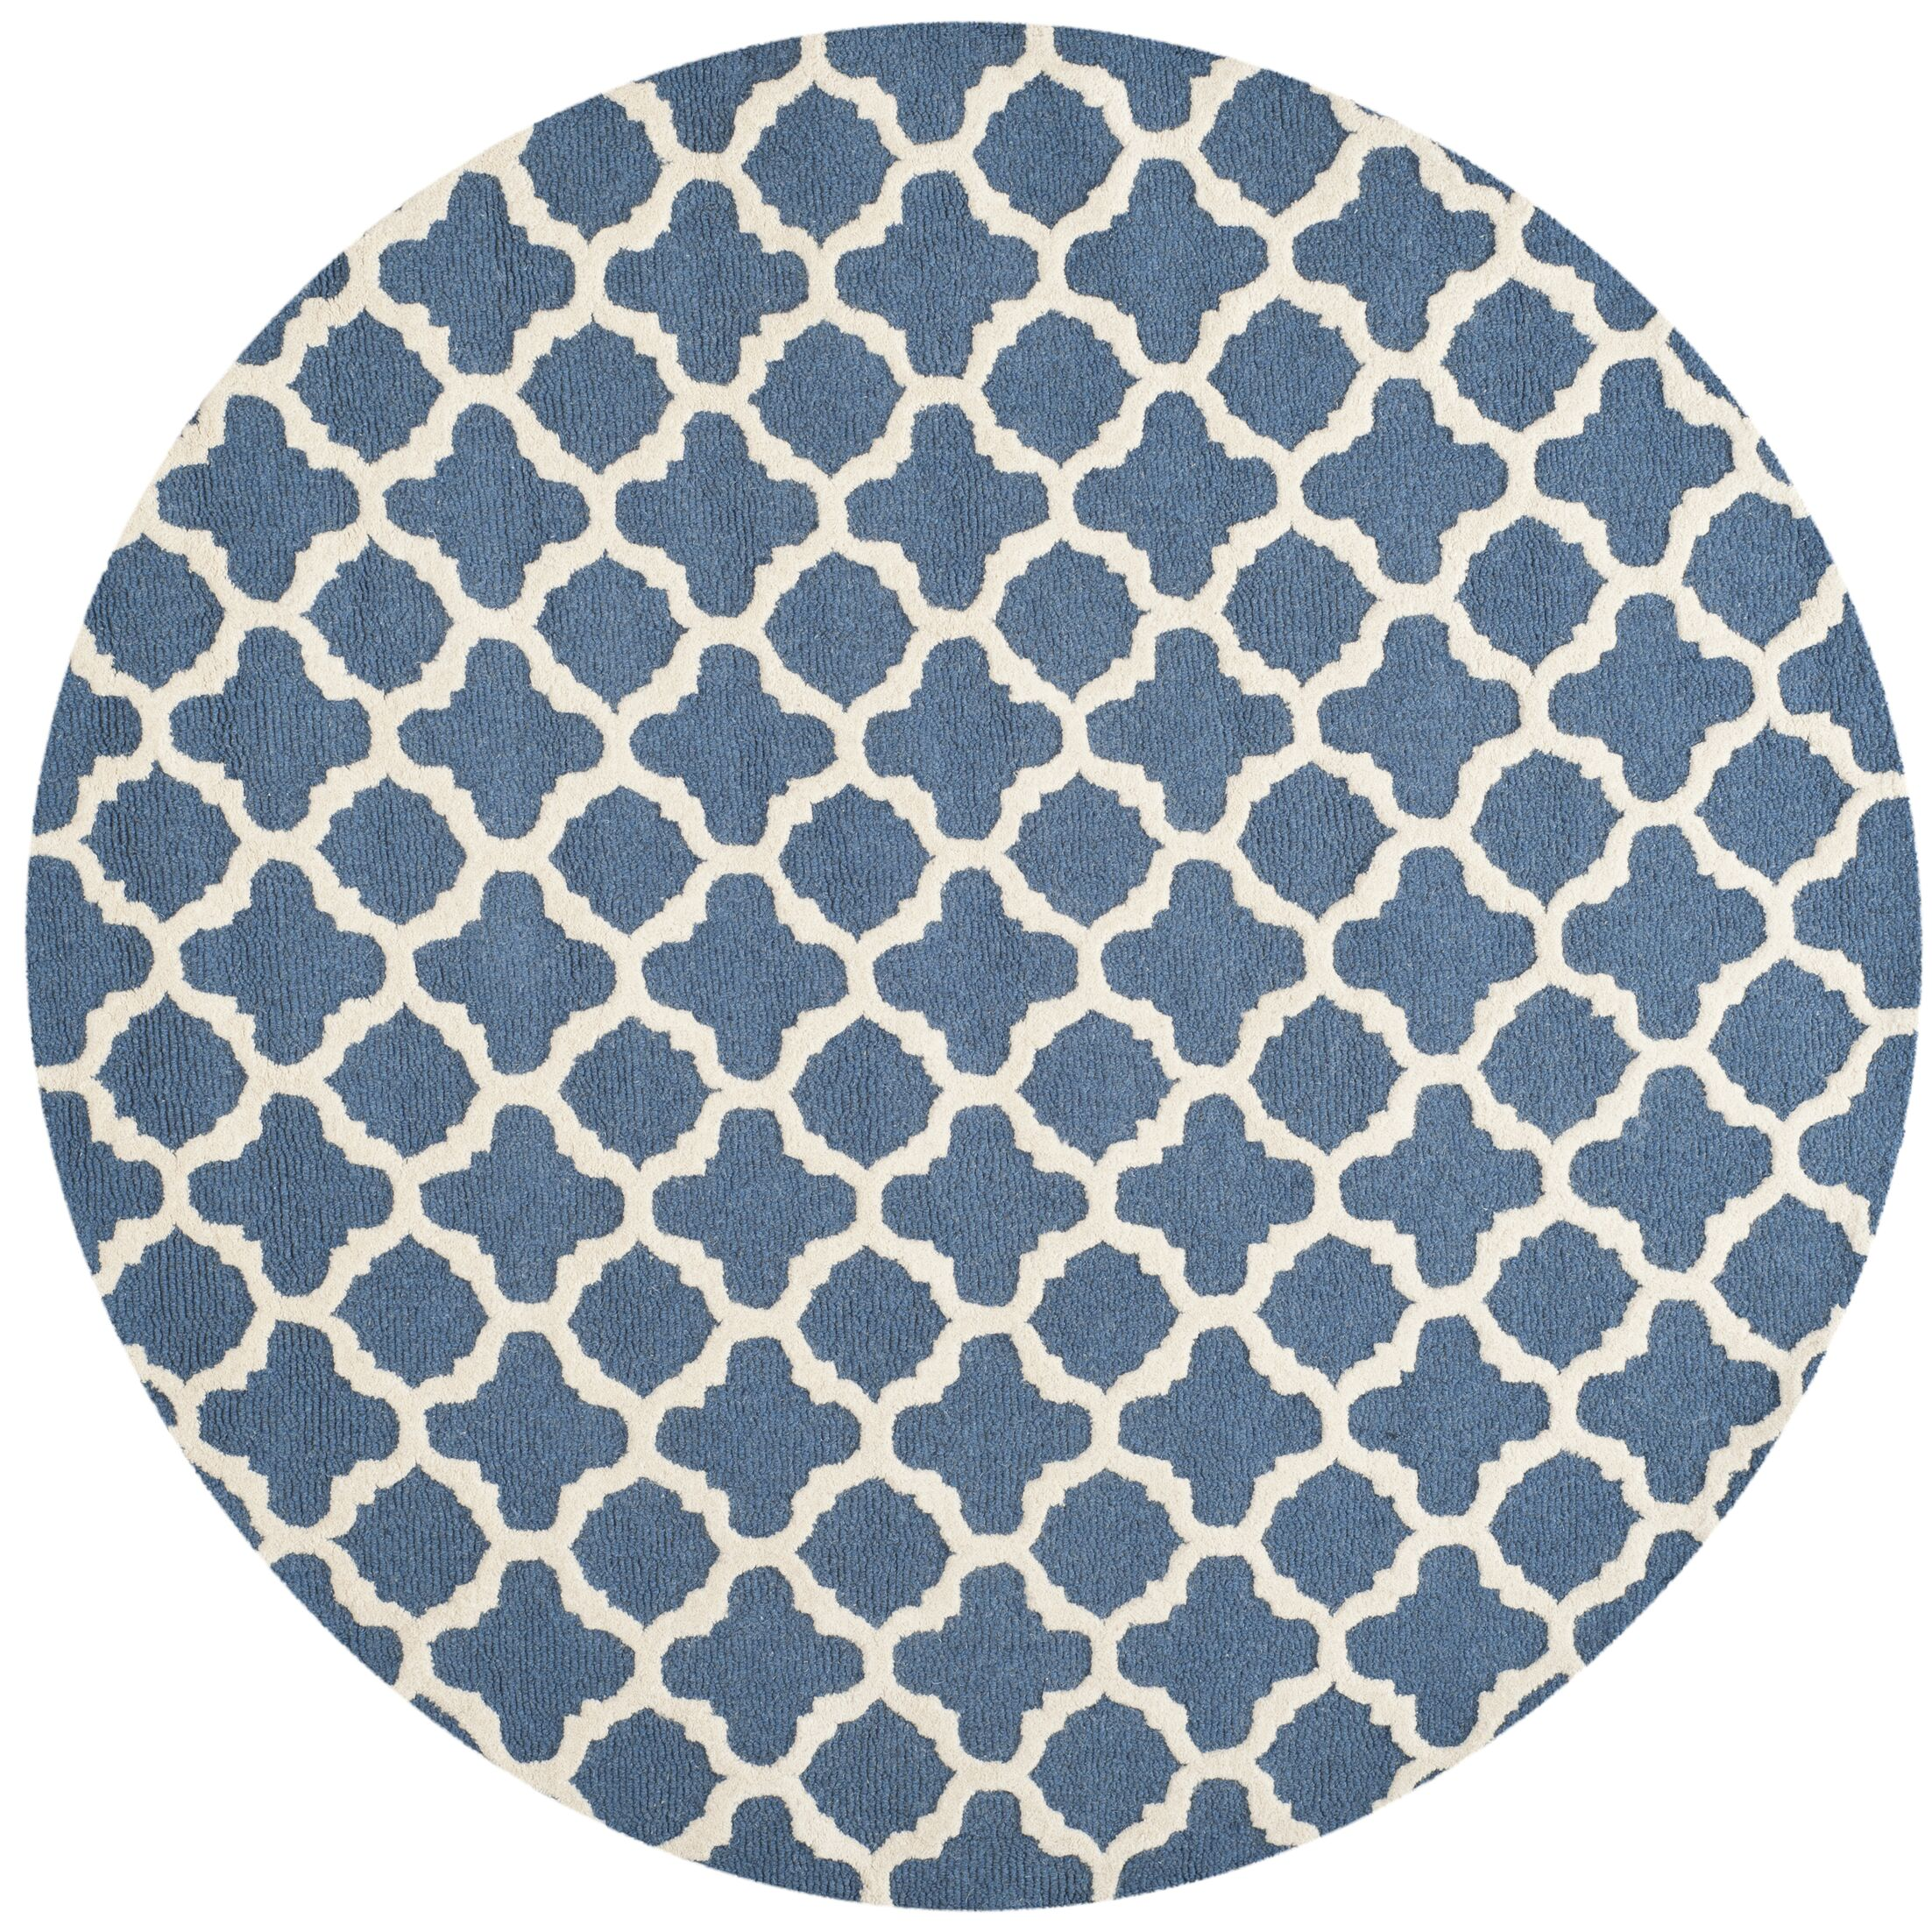 Martins Hand-Tufted Wool Blue Area Rug Rug Size: Round 6'